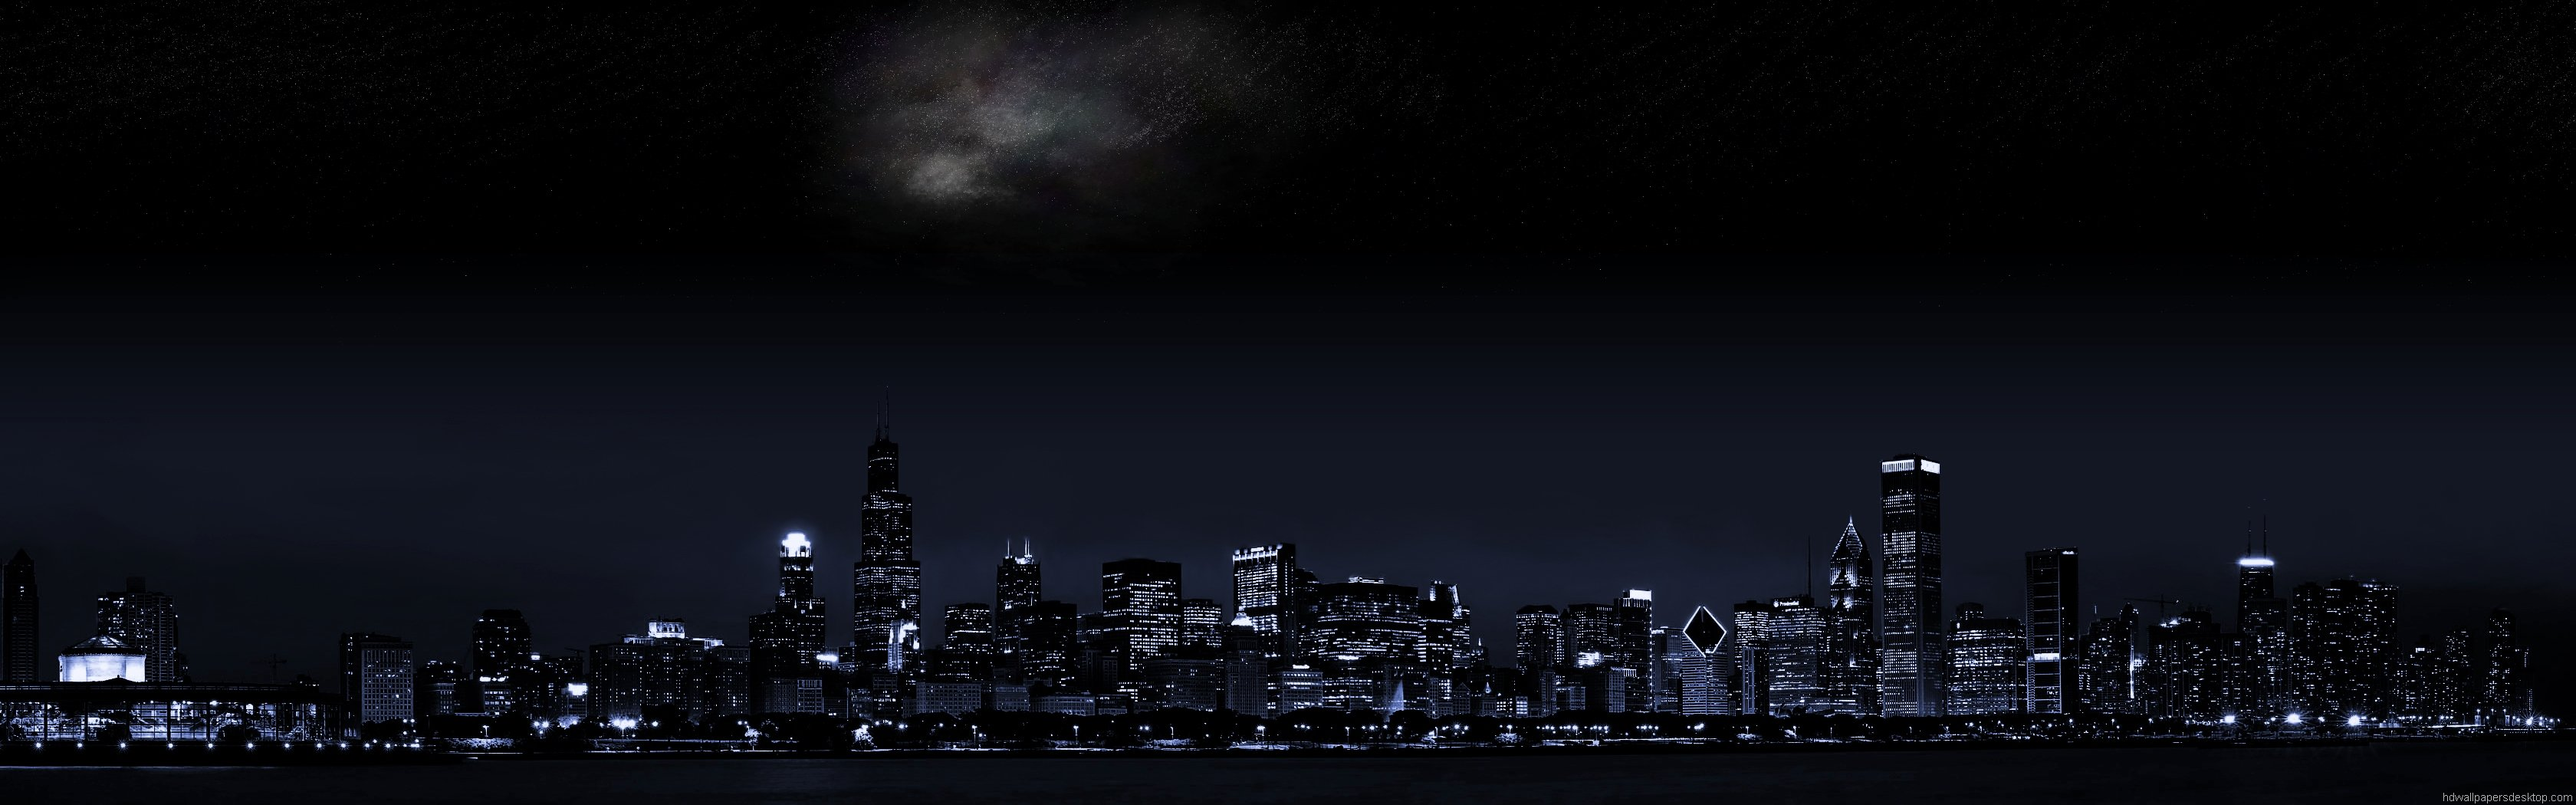 monitor widescreen wallpapers - photo #6